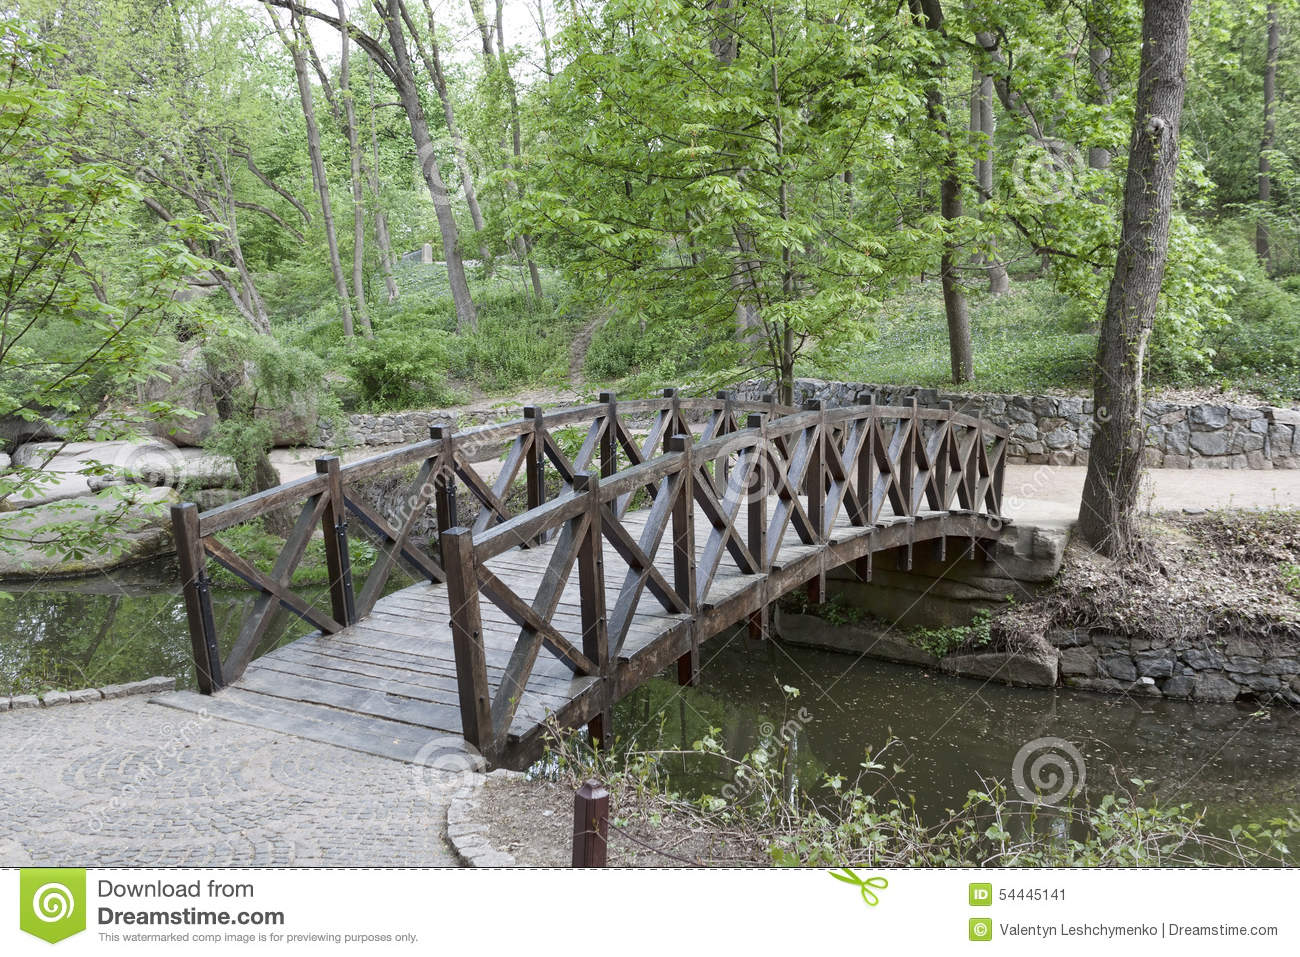 [Multiverse][Relaxed] Dissidia Multiverse OOC - Page 2 Wooden-bridge-over-small-river-sophia-park-uman-sofiyivsky-located-northern-part-city-cherkasy-oblast-54445141